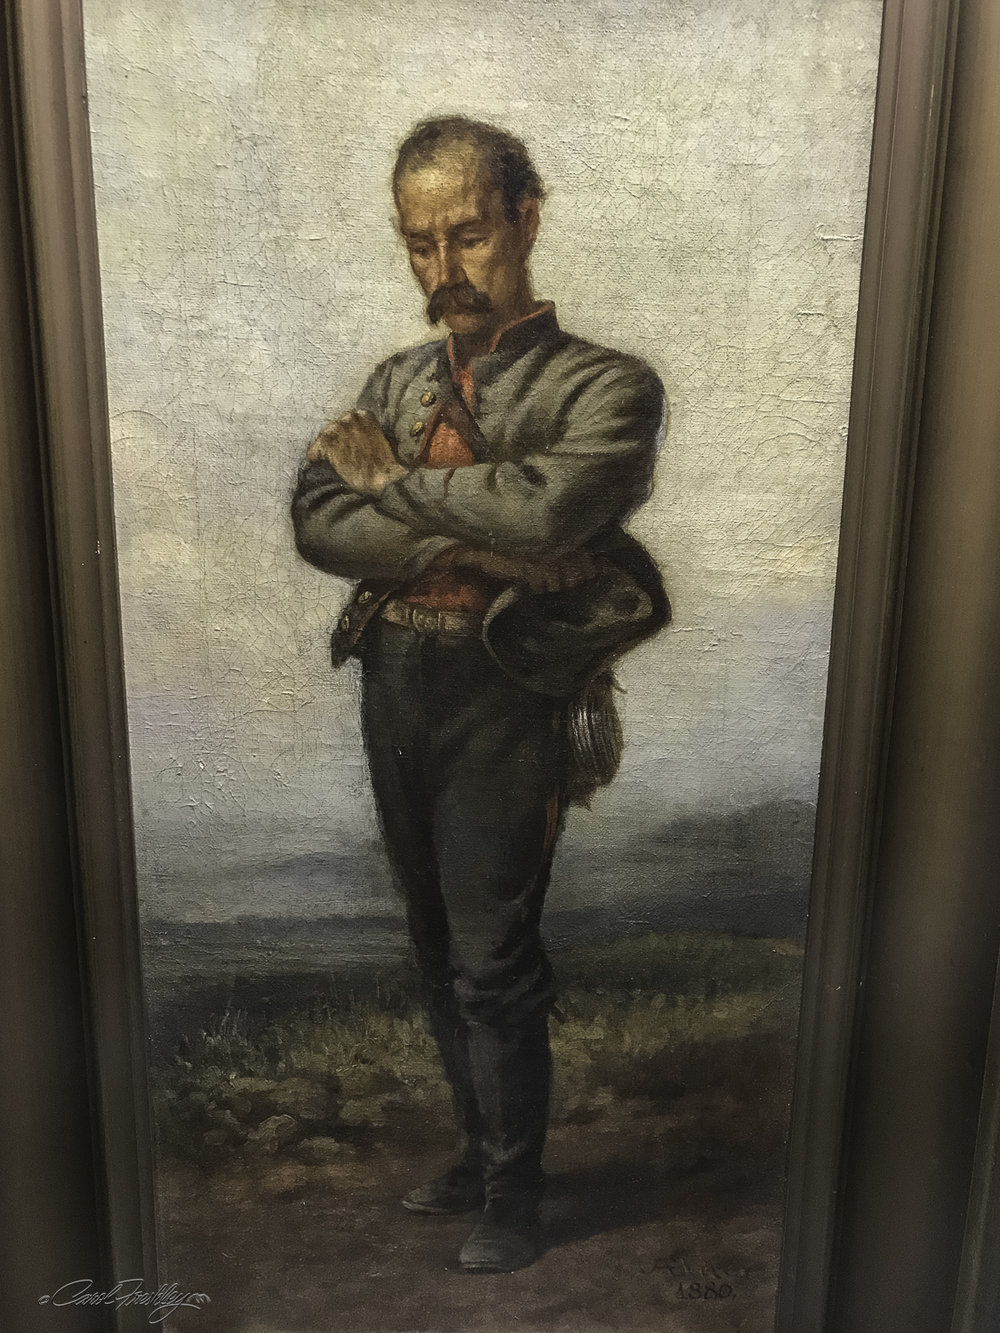 """""""Appomattox"""" by John Elder, an 1880 oil painting signed and dated by the artist. It is a compelling portrait of a Confederate soldier following the surrender of General Lee. The soldier is portrayed with arms crossed and head slightly bowed, with downcast eyes - typifying the blend of defiance and sorrow felt after the surrender."""